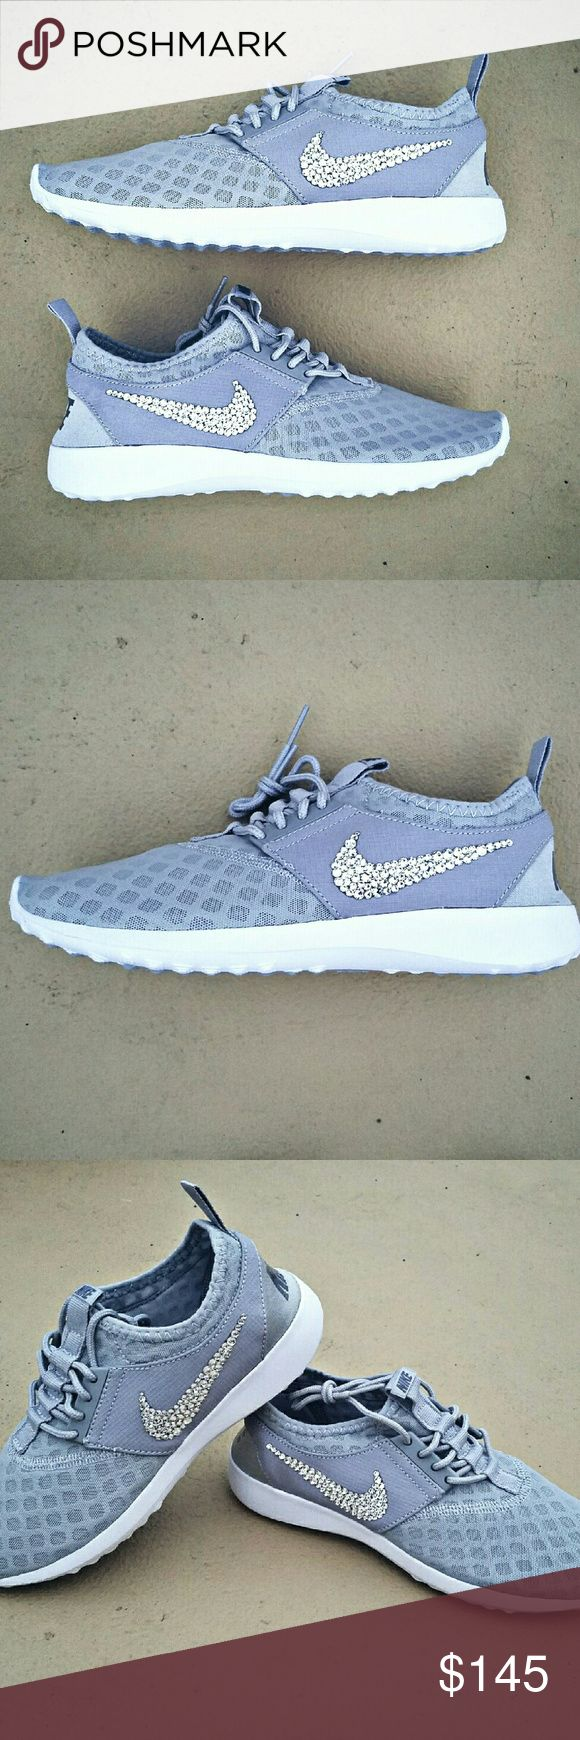 SWAROVSKI Crystal Bling Nike Juvenate - Grey Nike Juvenate Color: Grey Embellished with genuine Swarovski XIRIUS Rose 2088 Crystals Swarovski's newest most revolutionary crystals, the XIRIUS collection takes one step closer to the diamond with extraordinary brilliance & shine Crystals are applied by hand with industrial-strength adhesive. Embellishment is permanent. Extra crystals are provided just in case Find more colors + styles at thefrostshoppe.etsy.com and in my closet Nike Shoes…